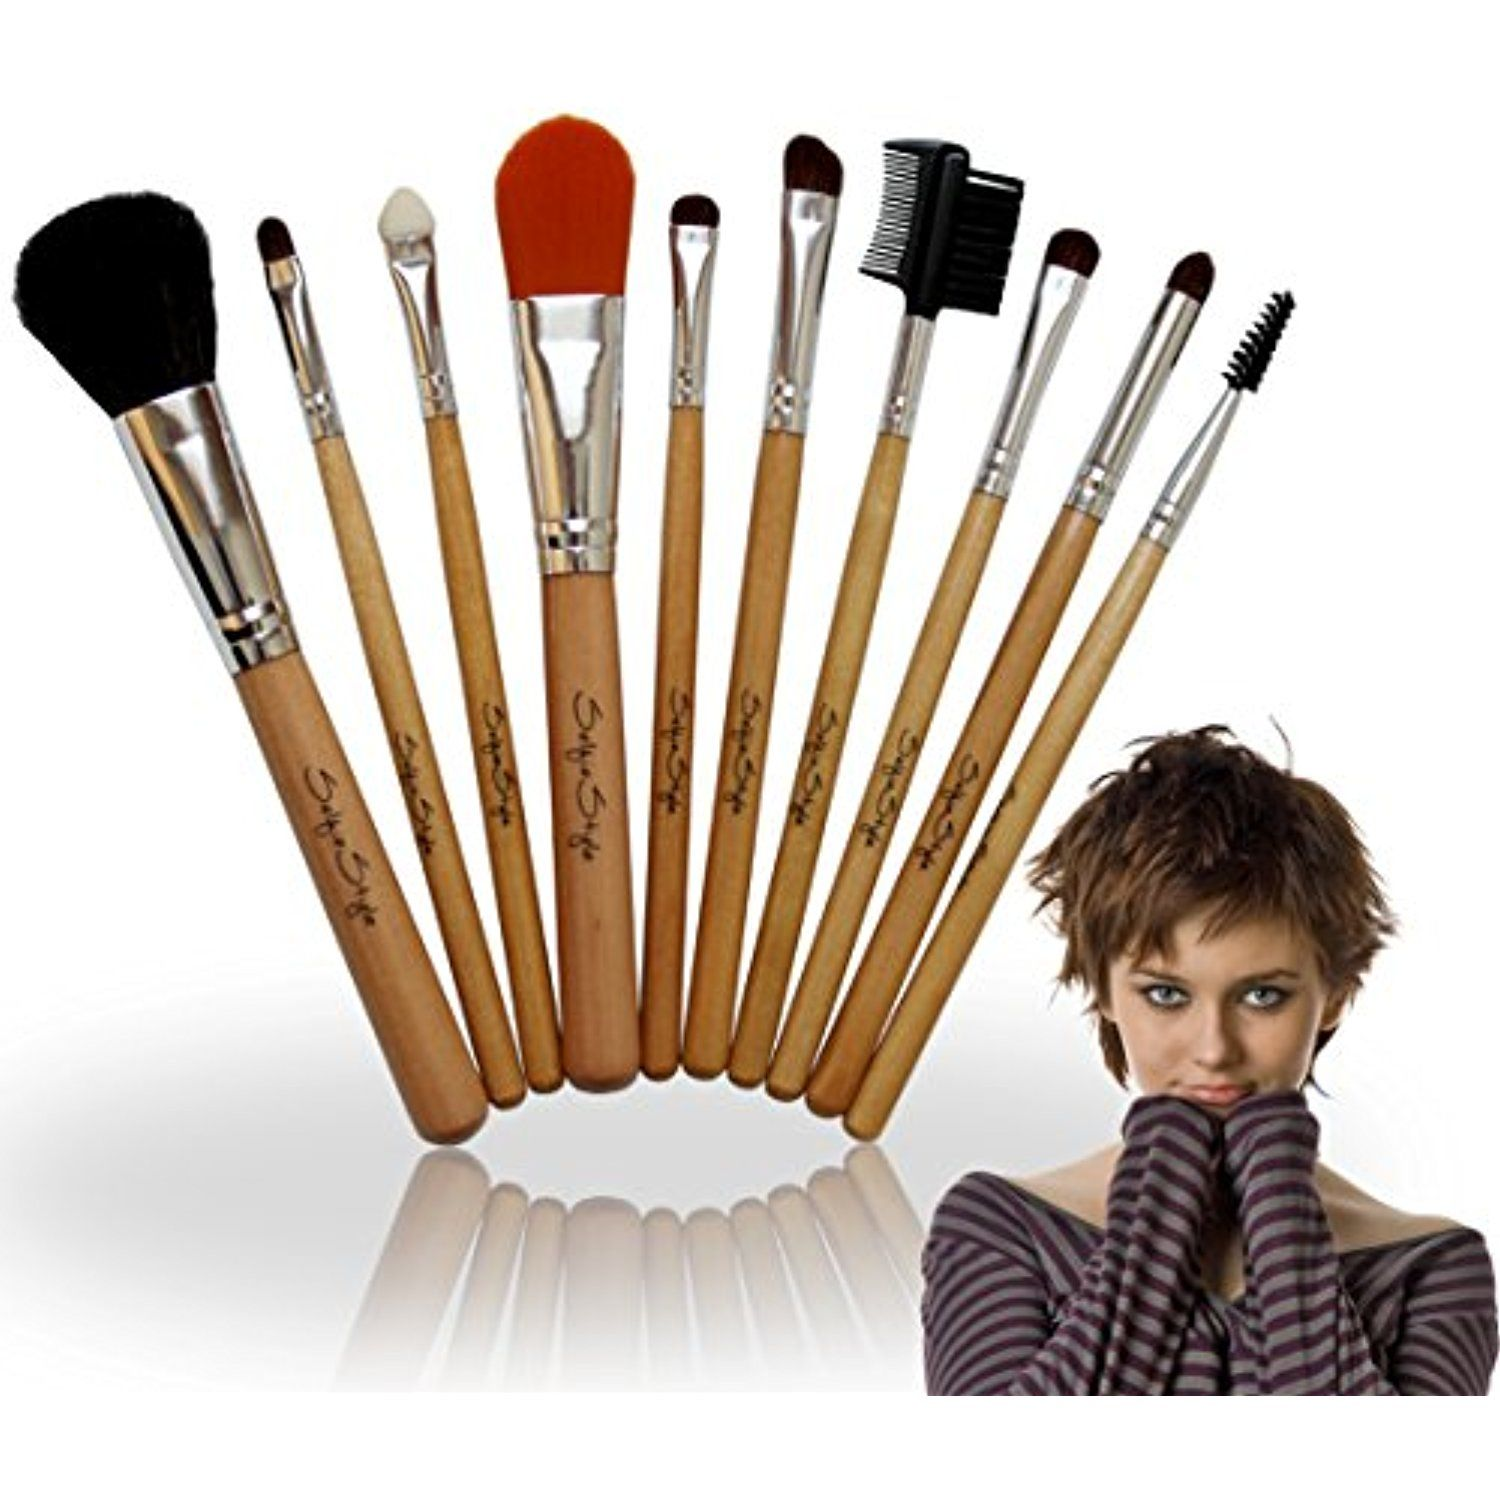 SALE Price and FREE Foundation Brush with Makeup Brushes